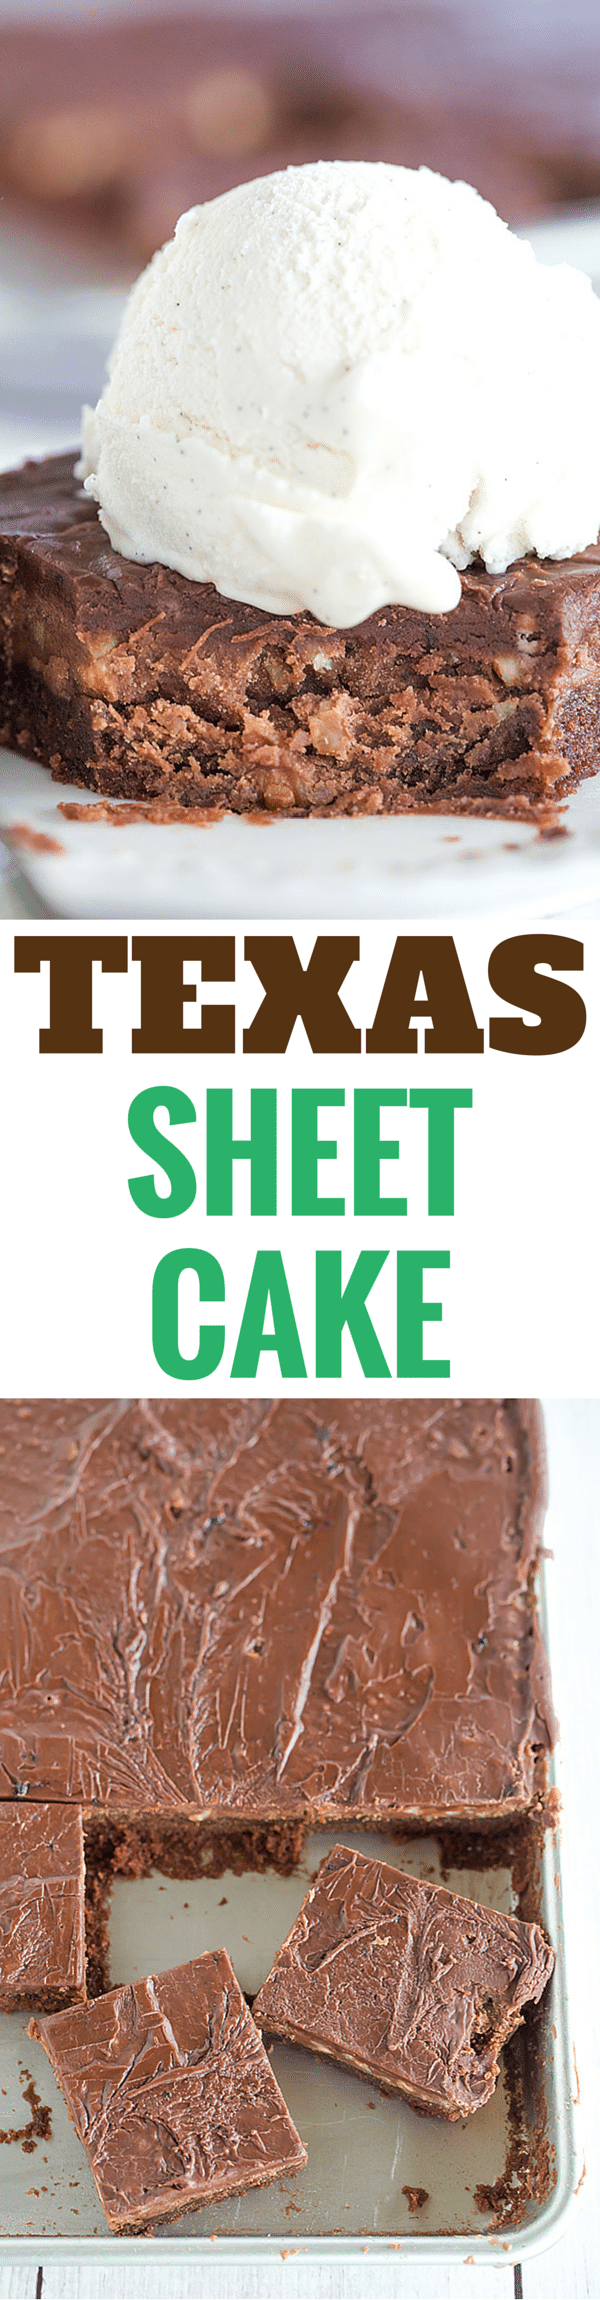 This classic Texas sheet cake has a thin layer of fluffy, moist chocolate cake and is topped with a fudge-like icing with chopped pecans.